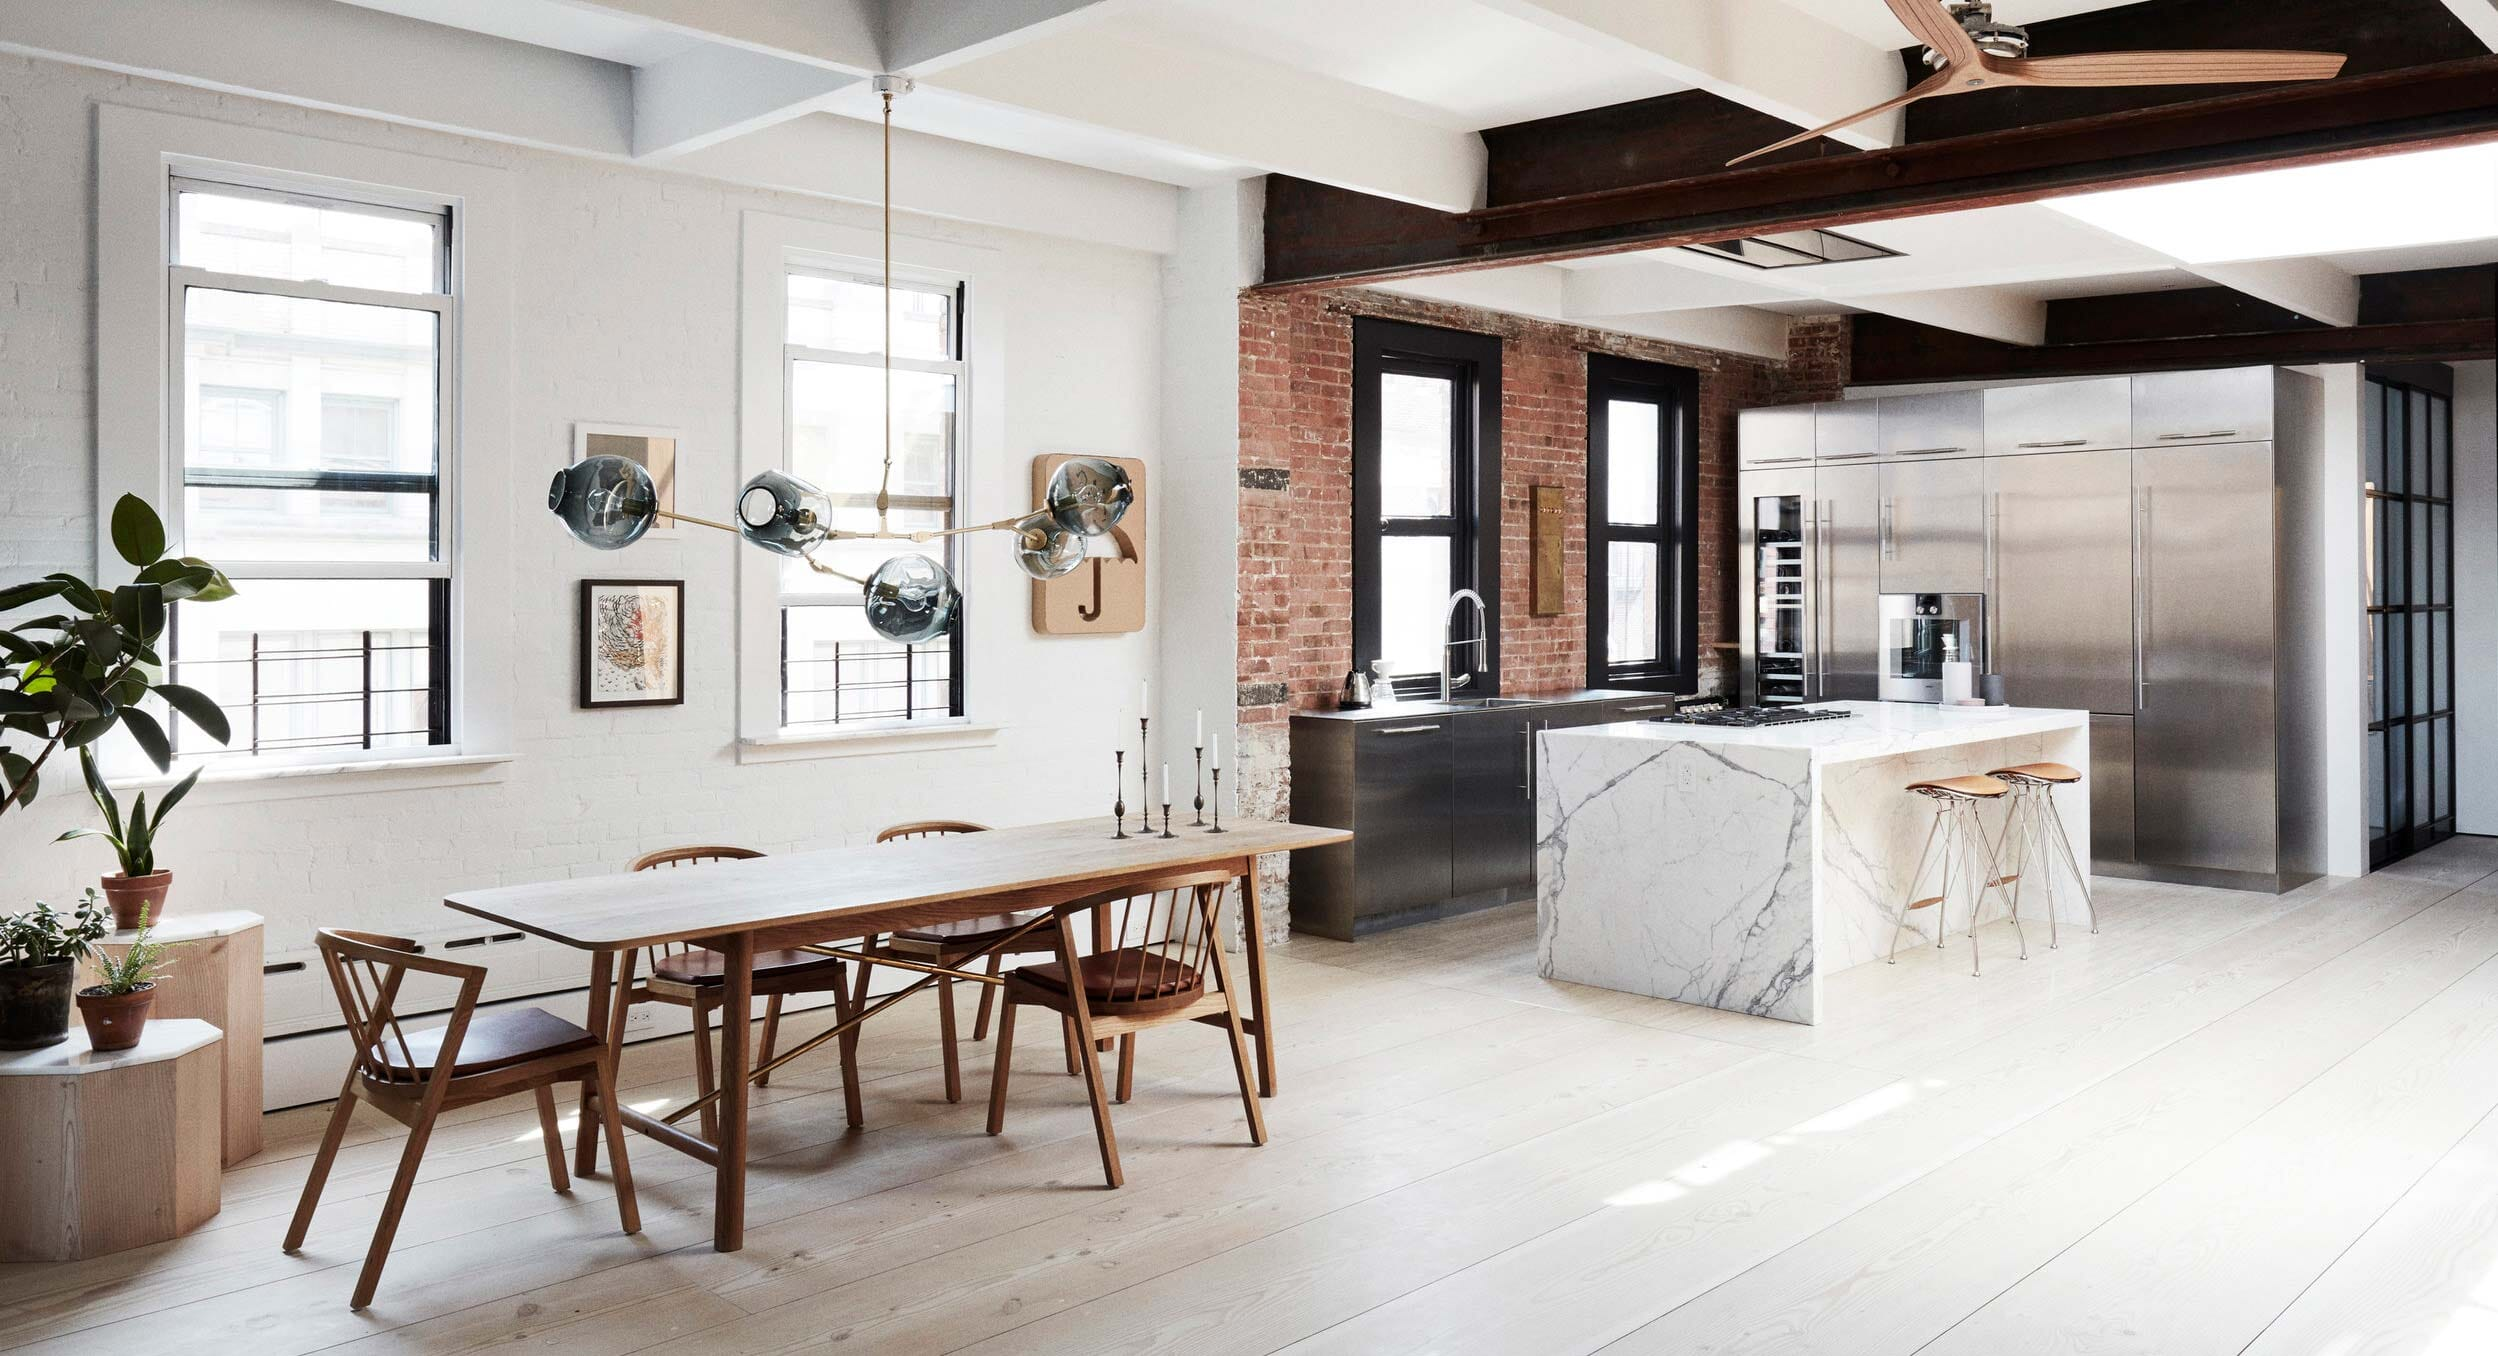 Søren Rose Studio Add A Touch Of Scandinavia To This NYC Loft